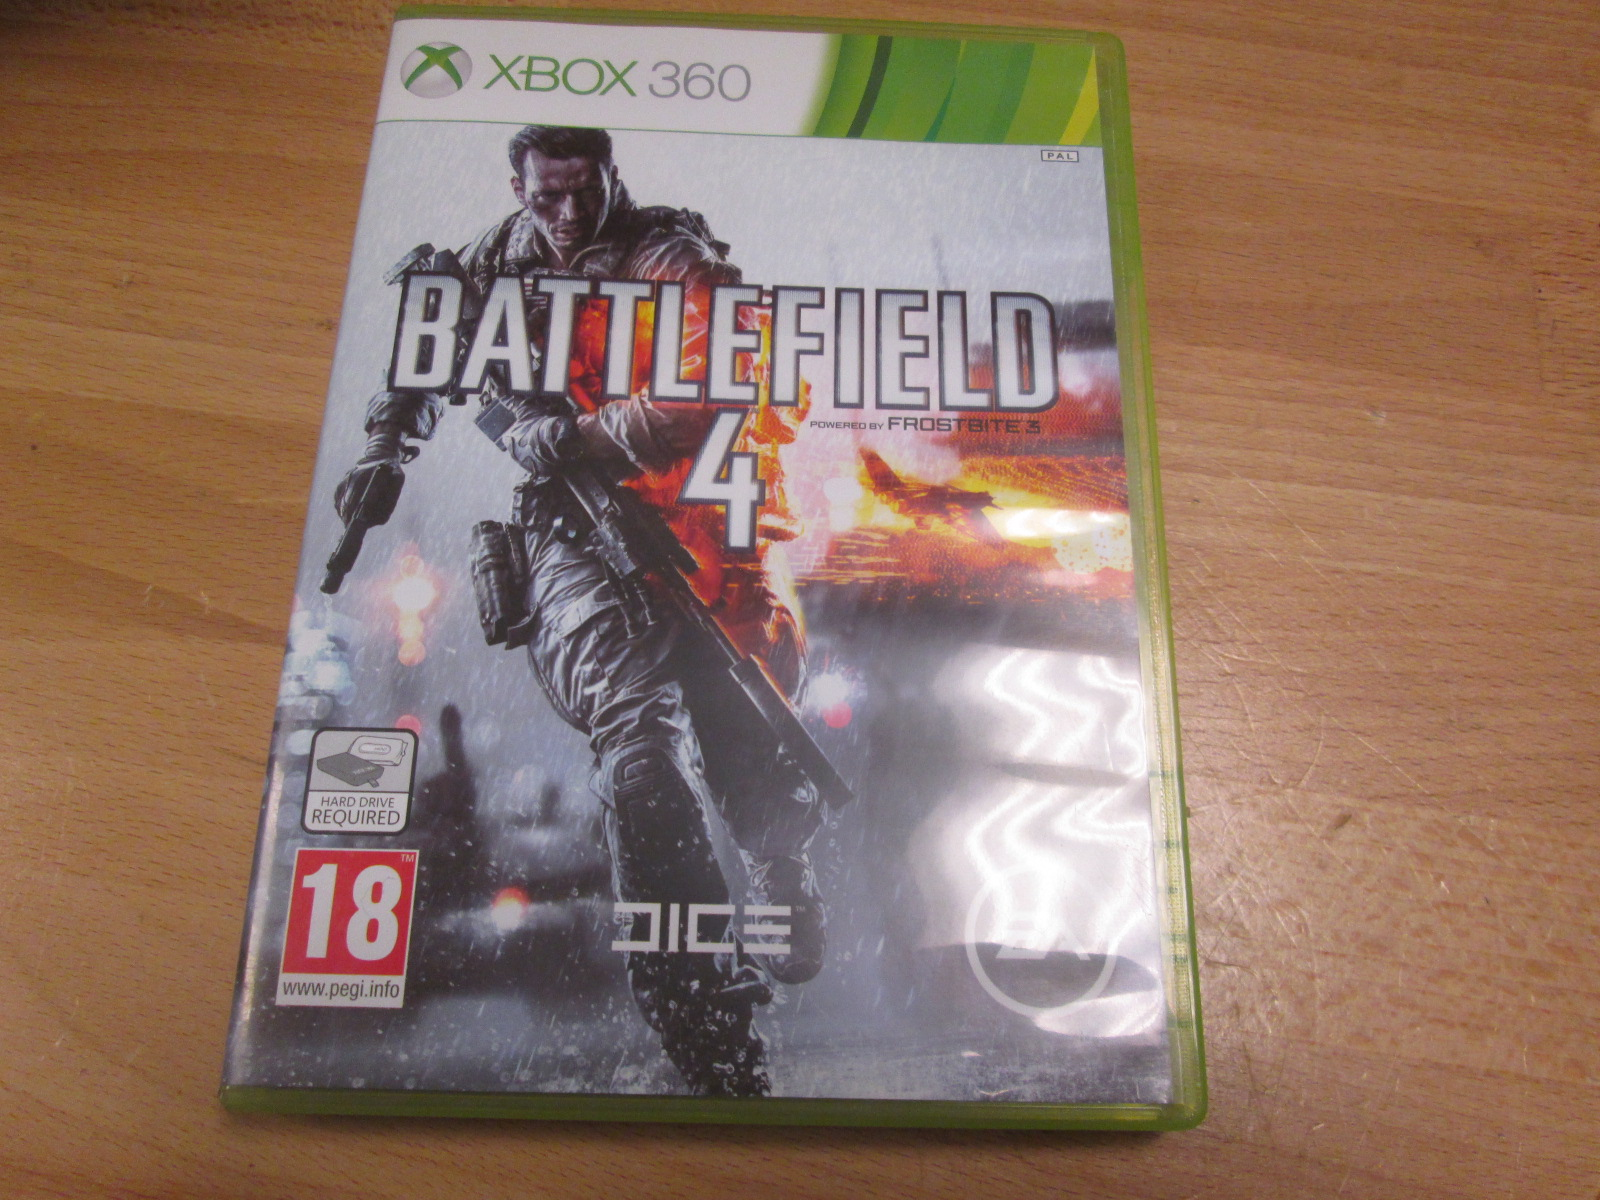 Battlefield 4 For Xbox 360 PAL Version